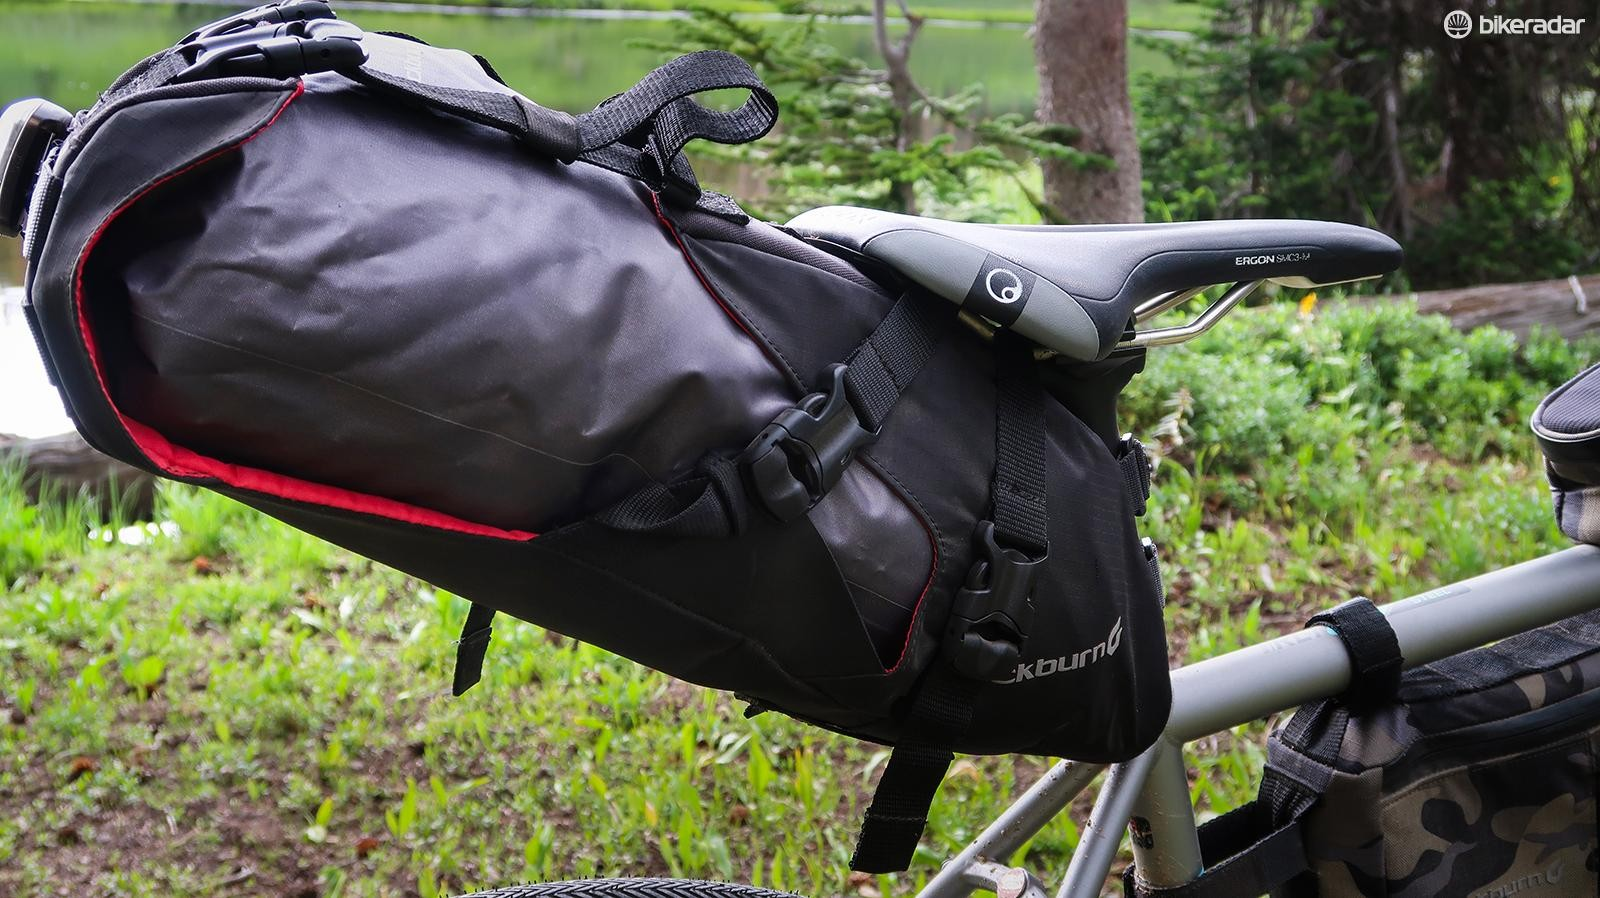 The Outpost saddle bag carried my tent and a few other items I would only need at camp